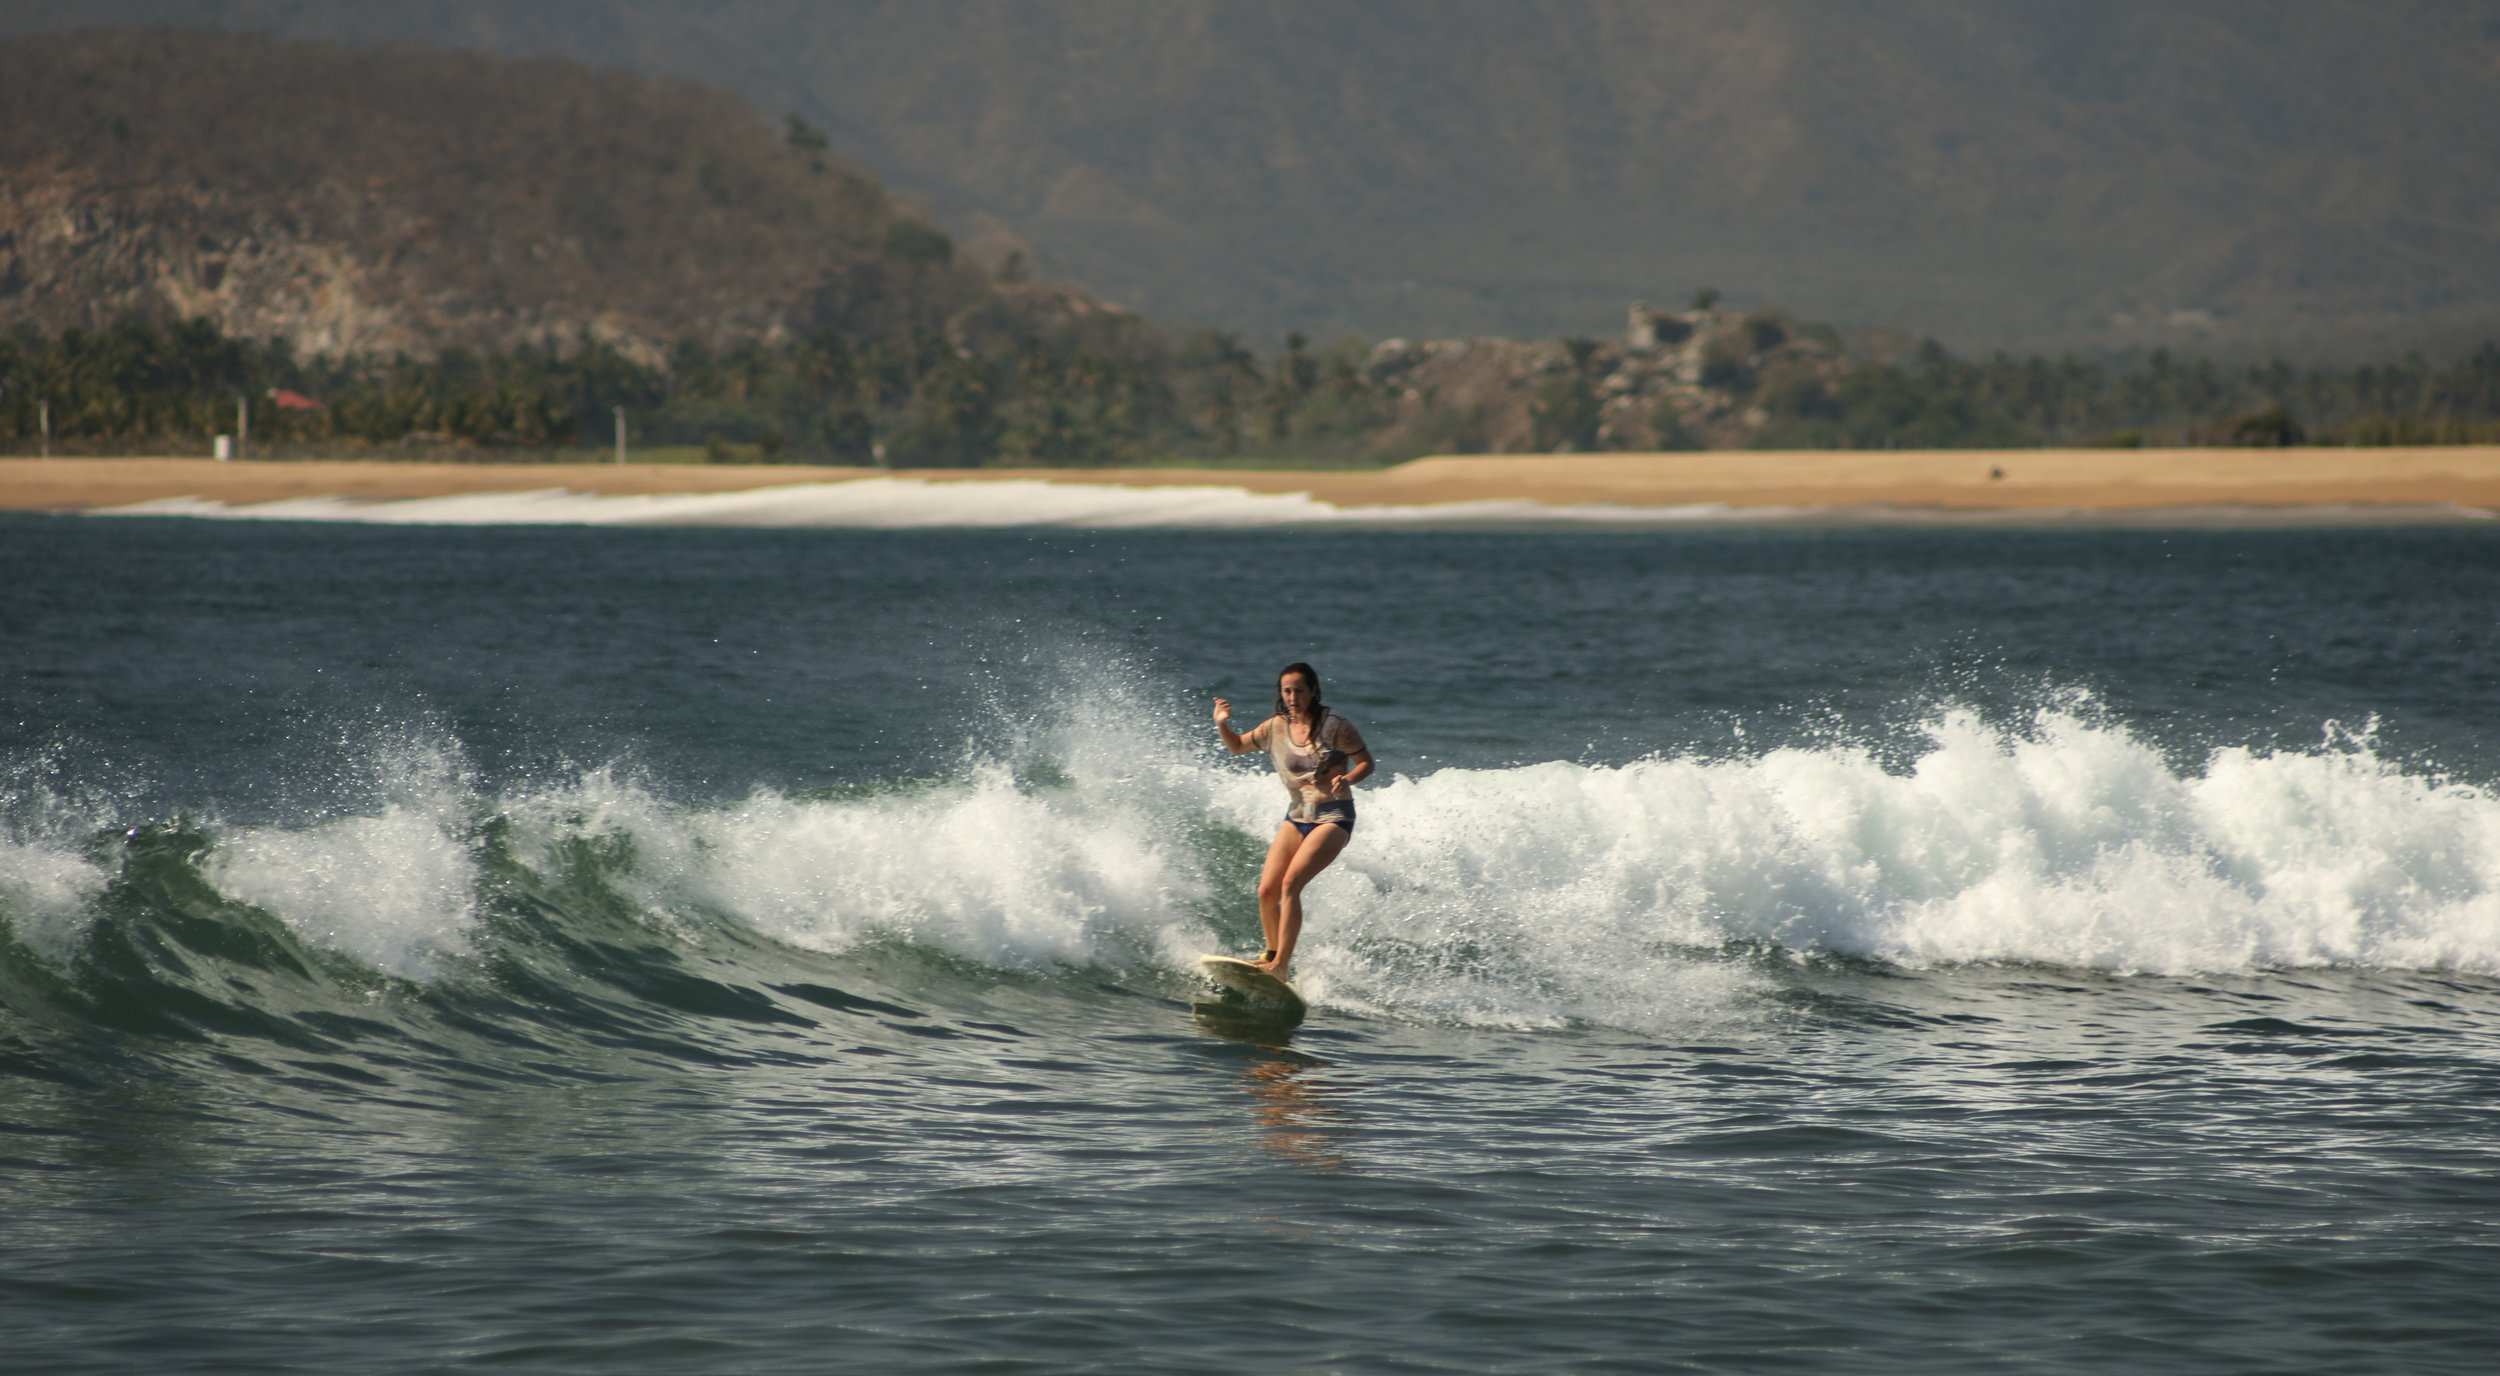 Rachel's best friend Carly came down for a visit. Here she is shredding some baby waves.